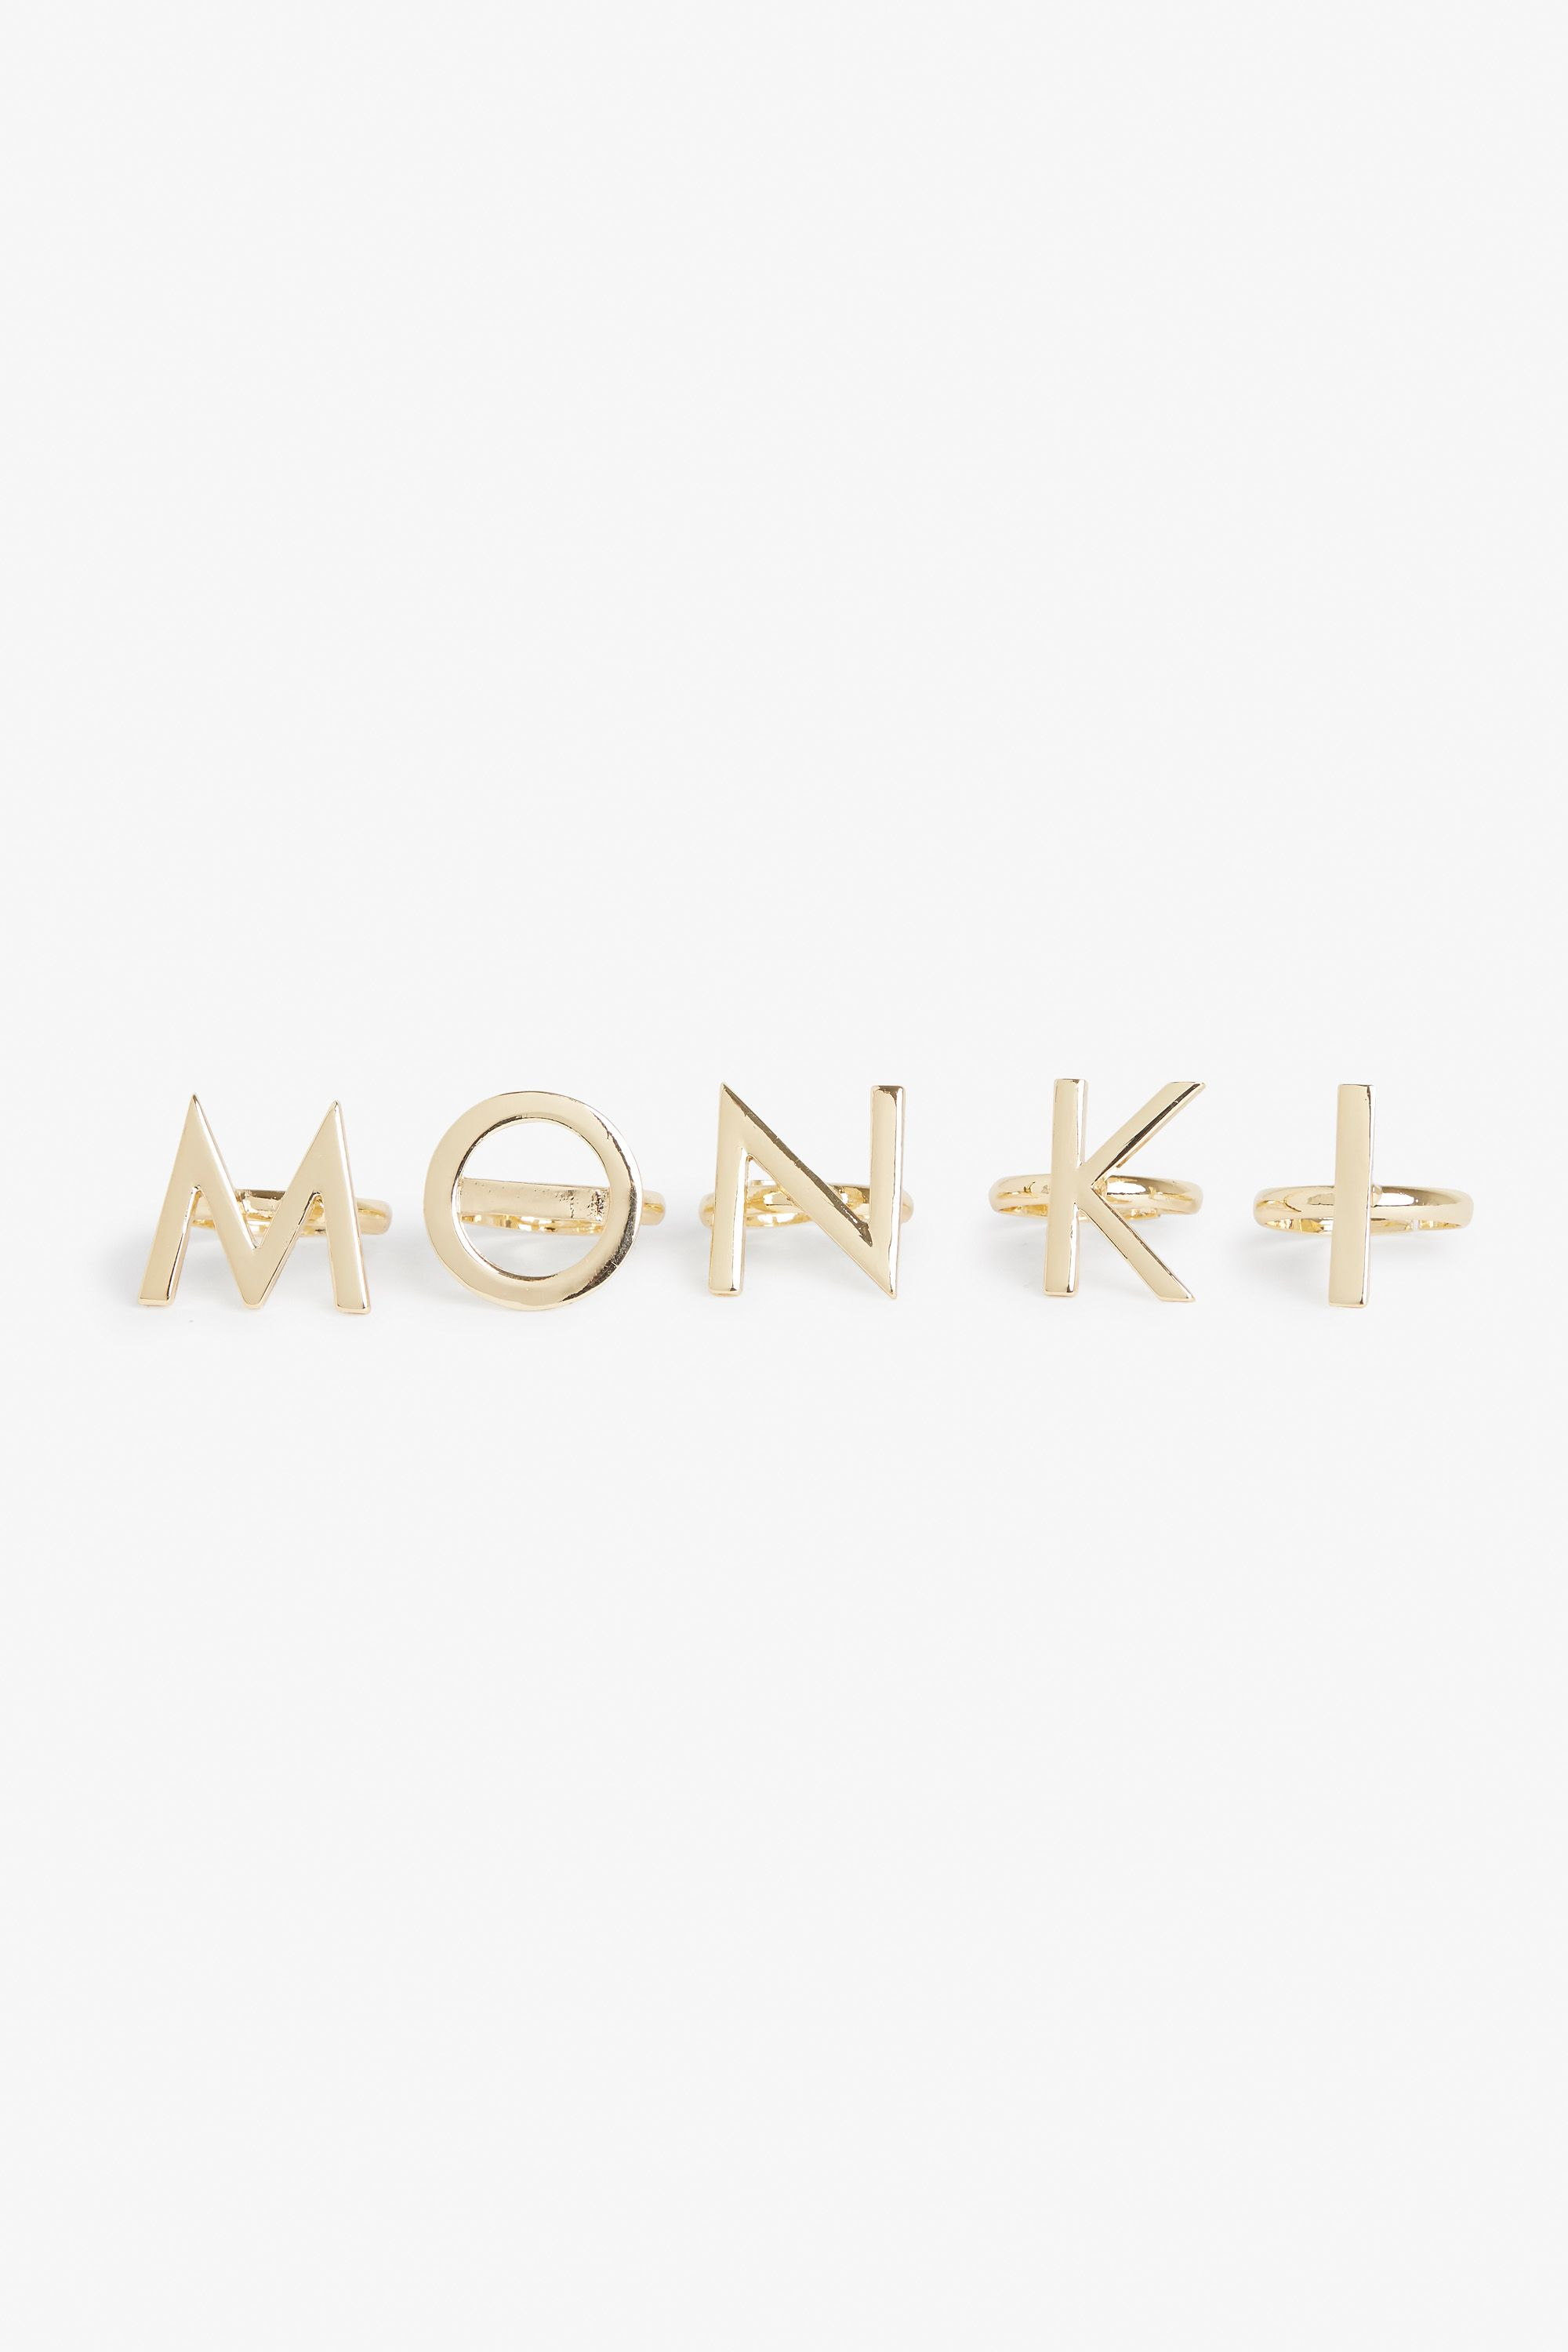 What luck! 5 letters, 5 fingers  It's a M O N K I  ring